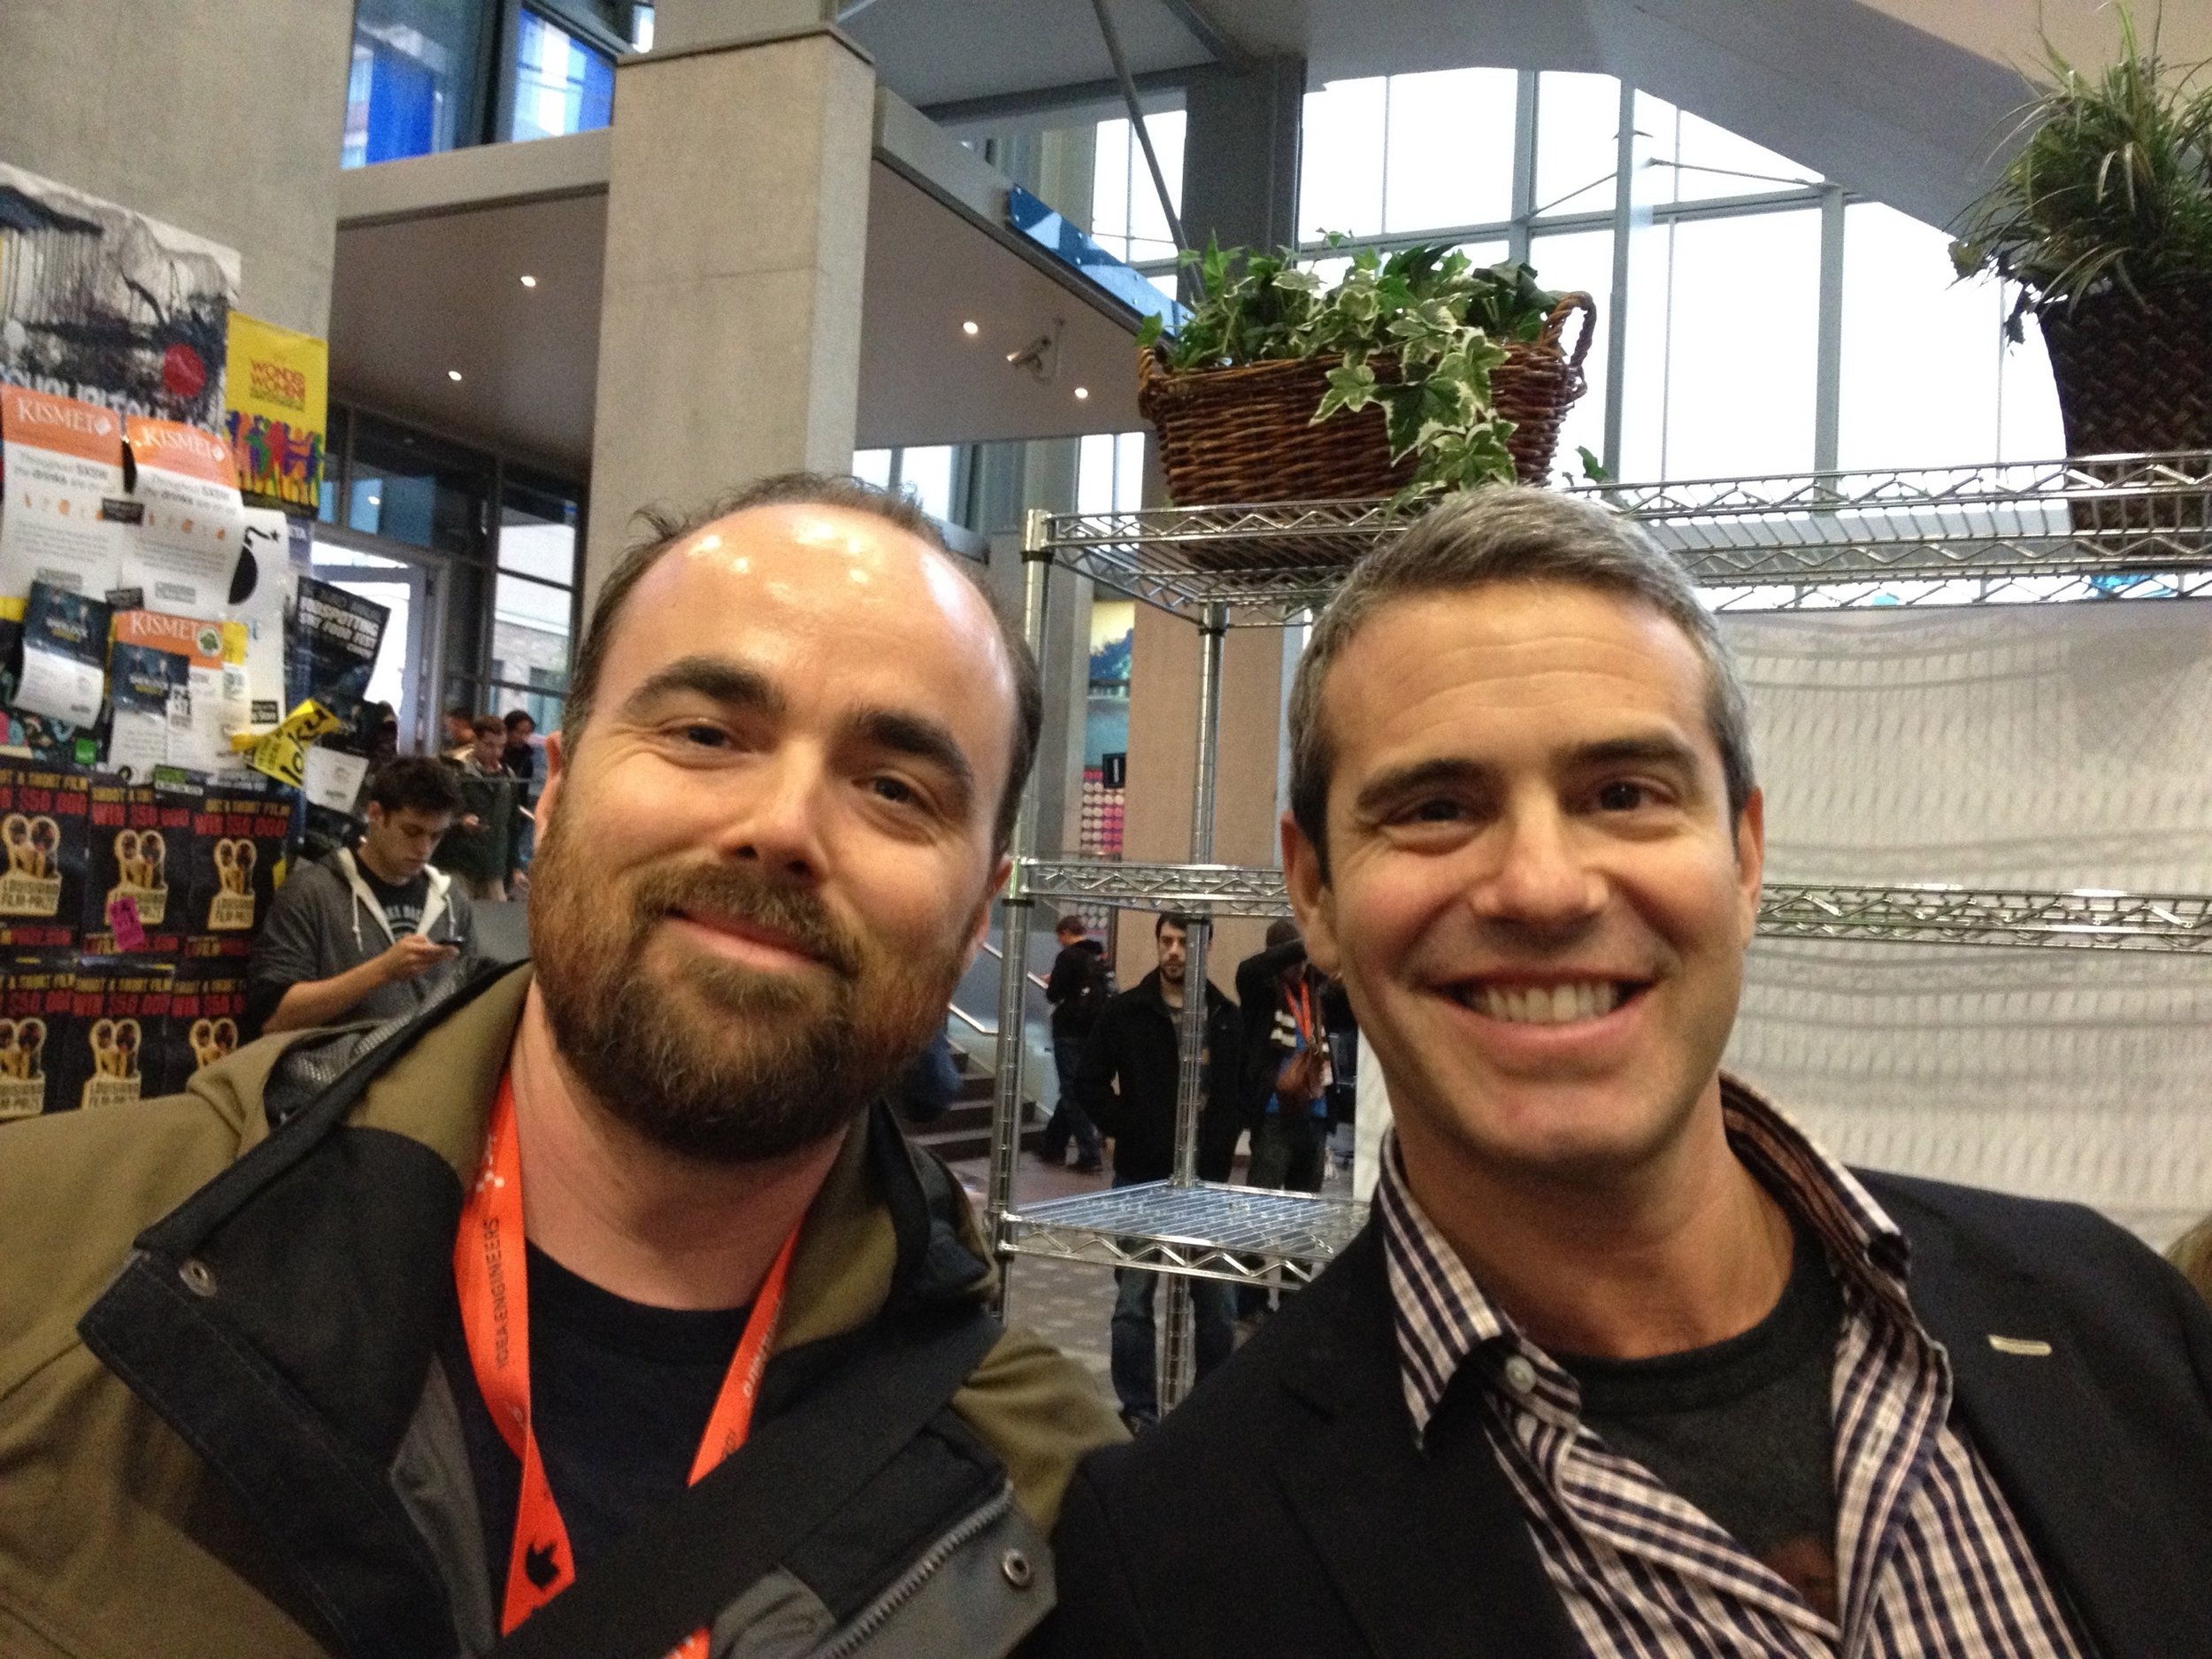 Mr. Pennington and Andy Cohen at SXSW 2011.